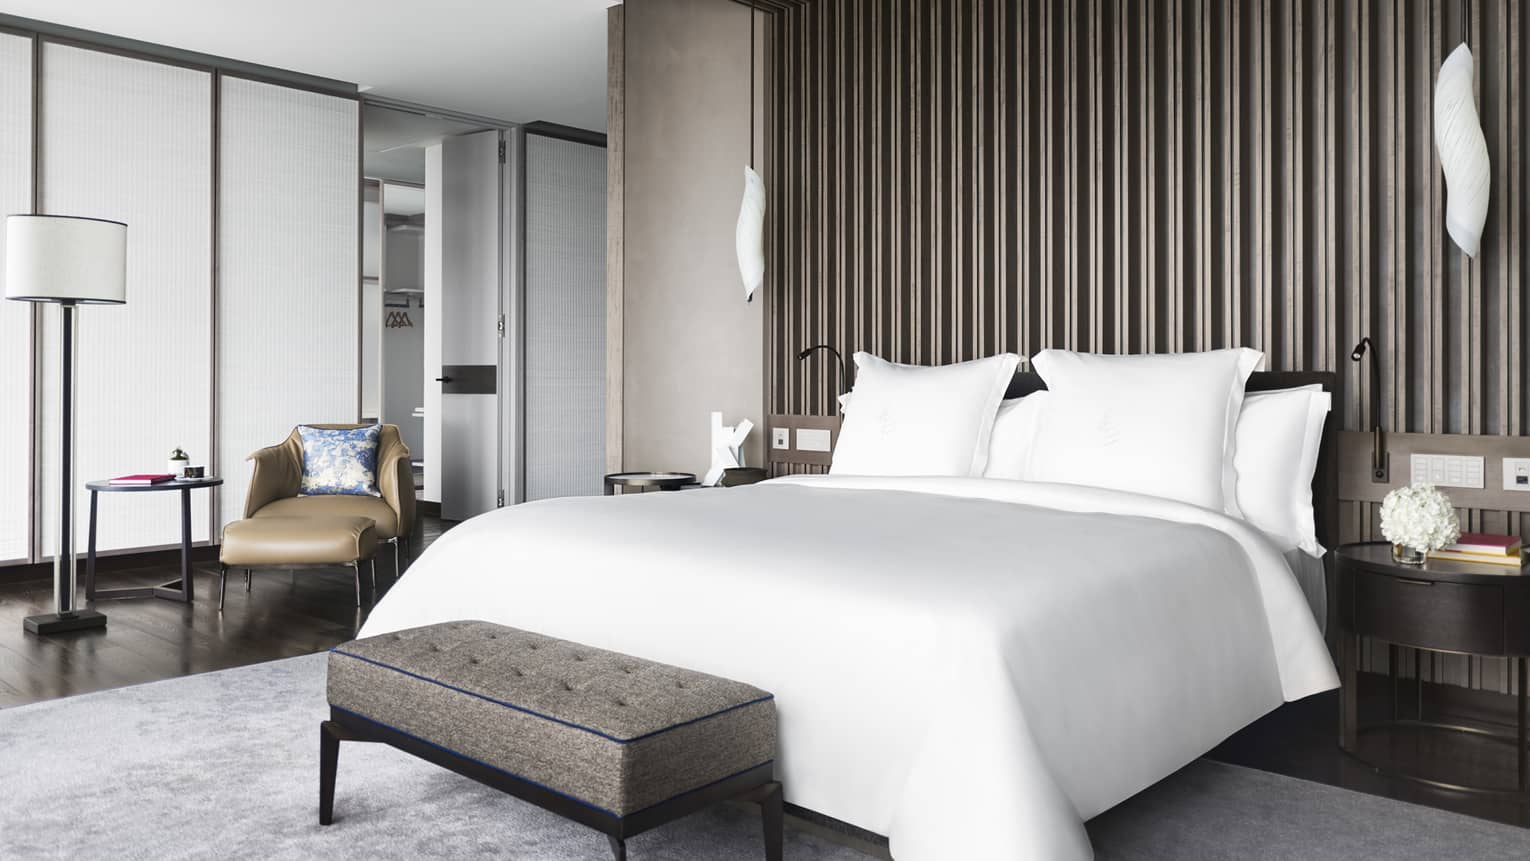 Hotel suite bedroom with white king bed and wooden accent wall/ceiling